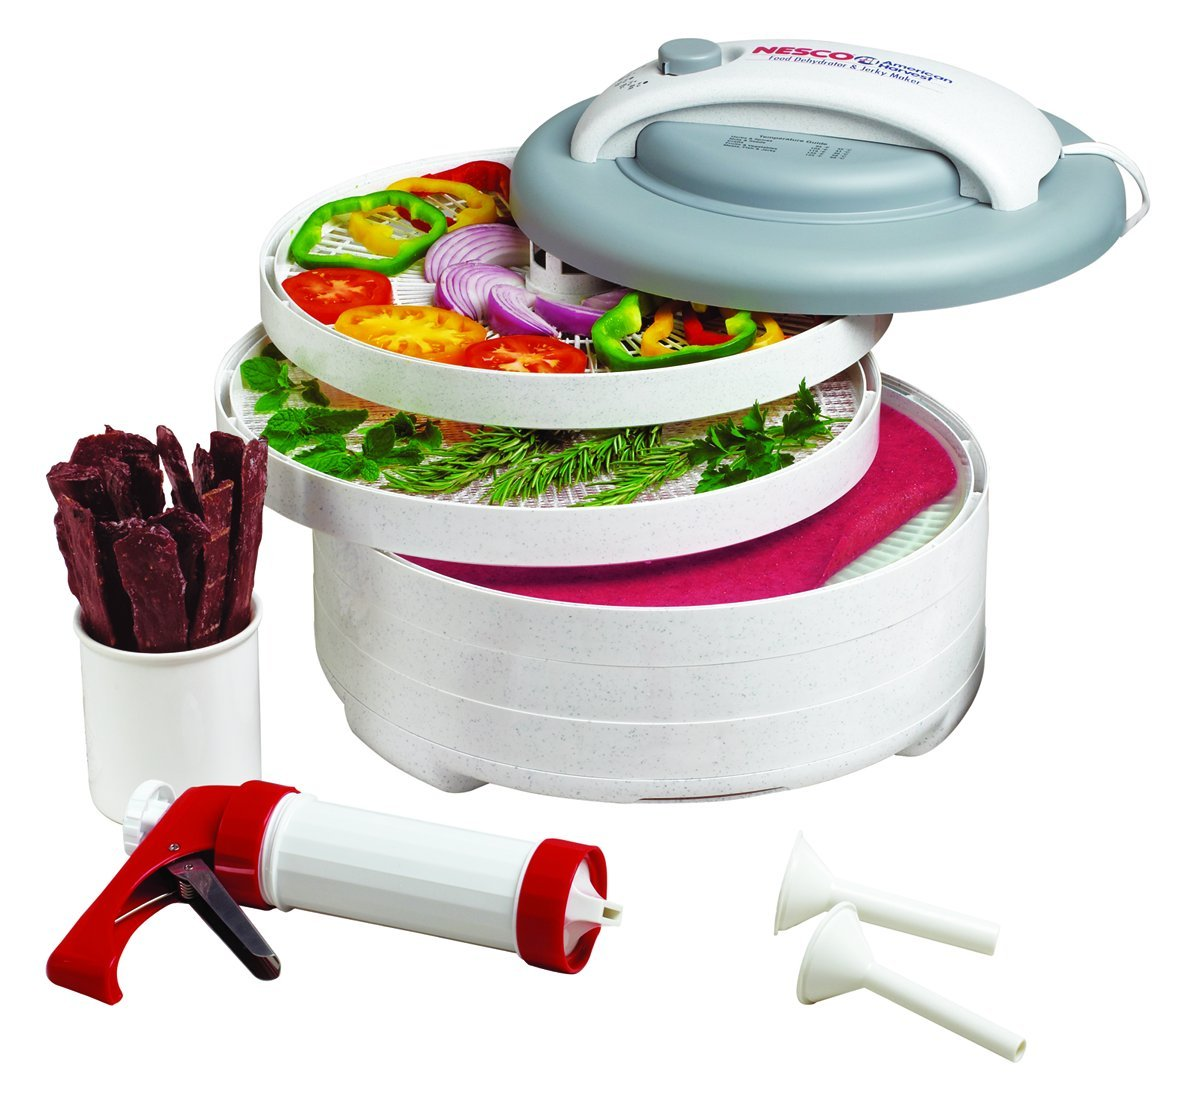 The Nesco FD-61WHC Snackmaster Express is a great machine to buy if you're going to be dehydrating food.